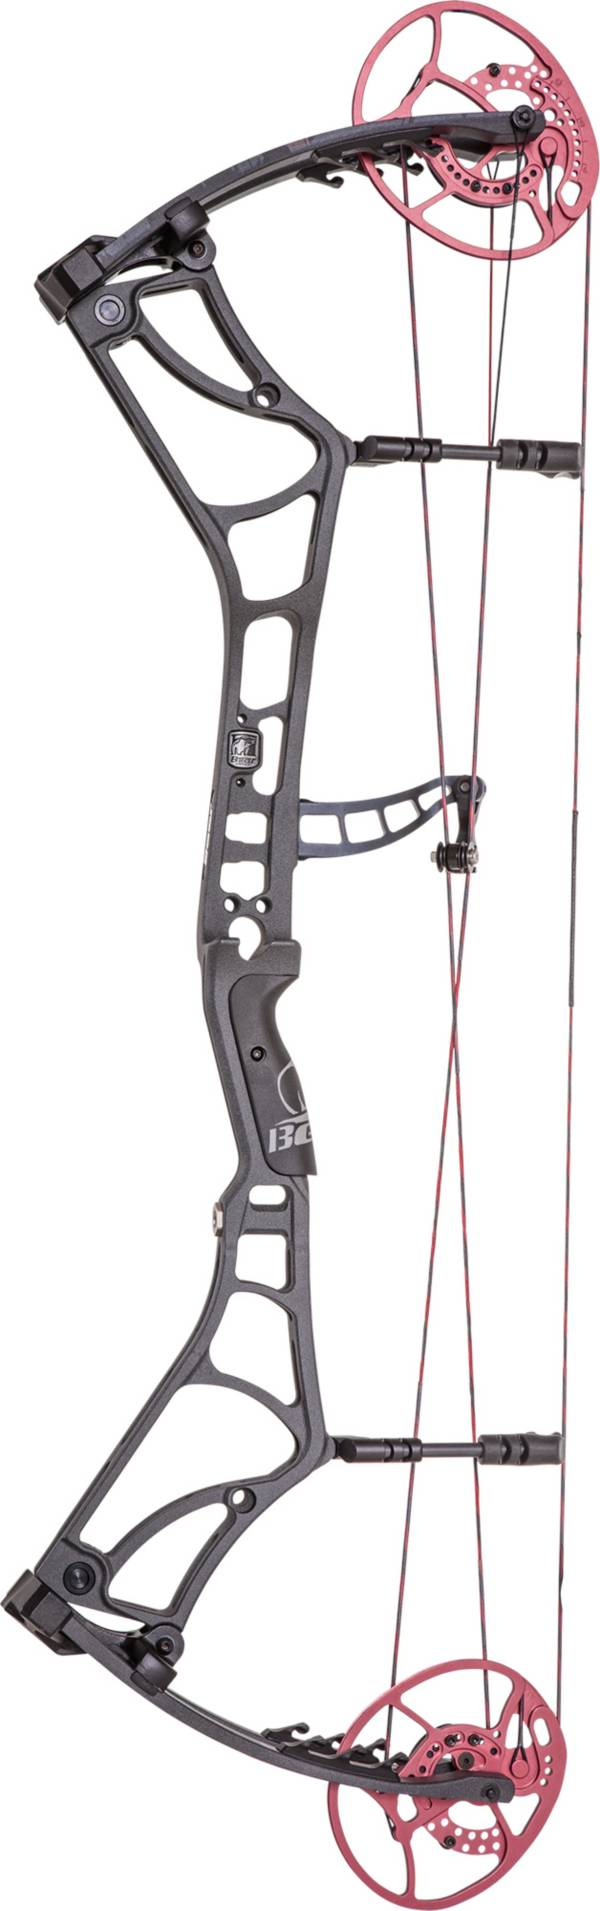 Bear Archery Rambo: Last Blood Limited Edition Compound Bow product image